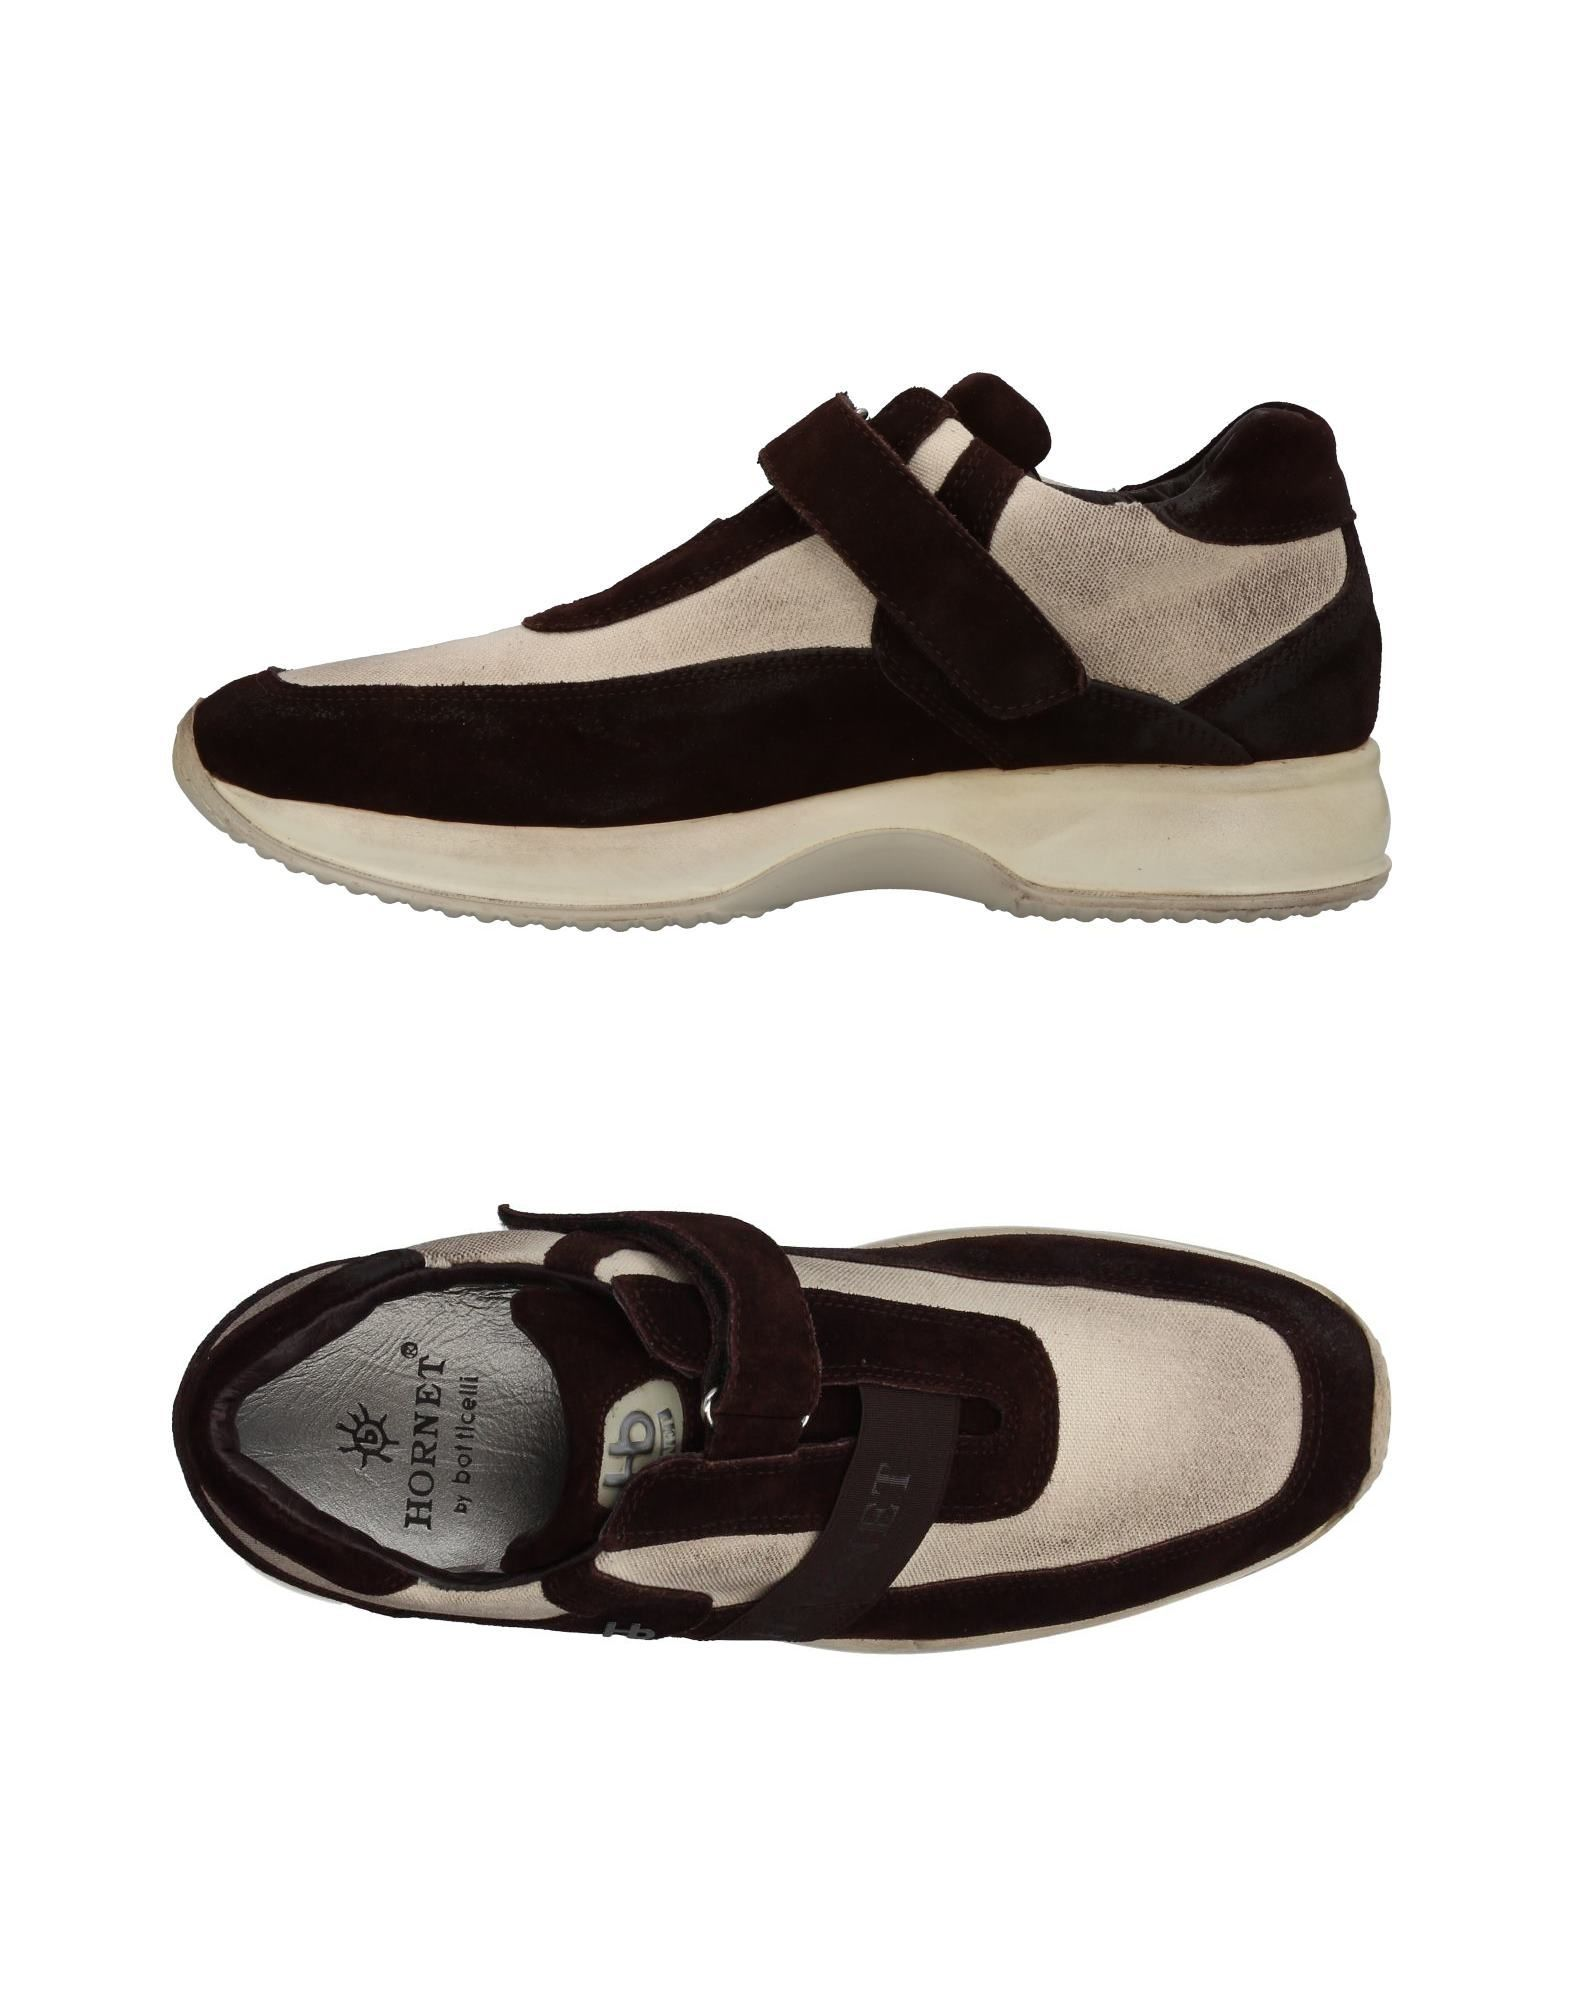 Sneakers Hornet By Botticelli Uomo - Acquista online su